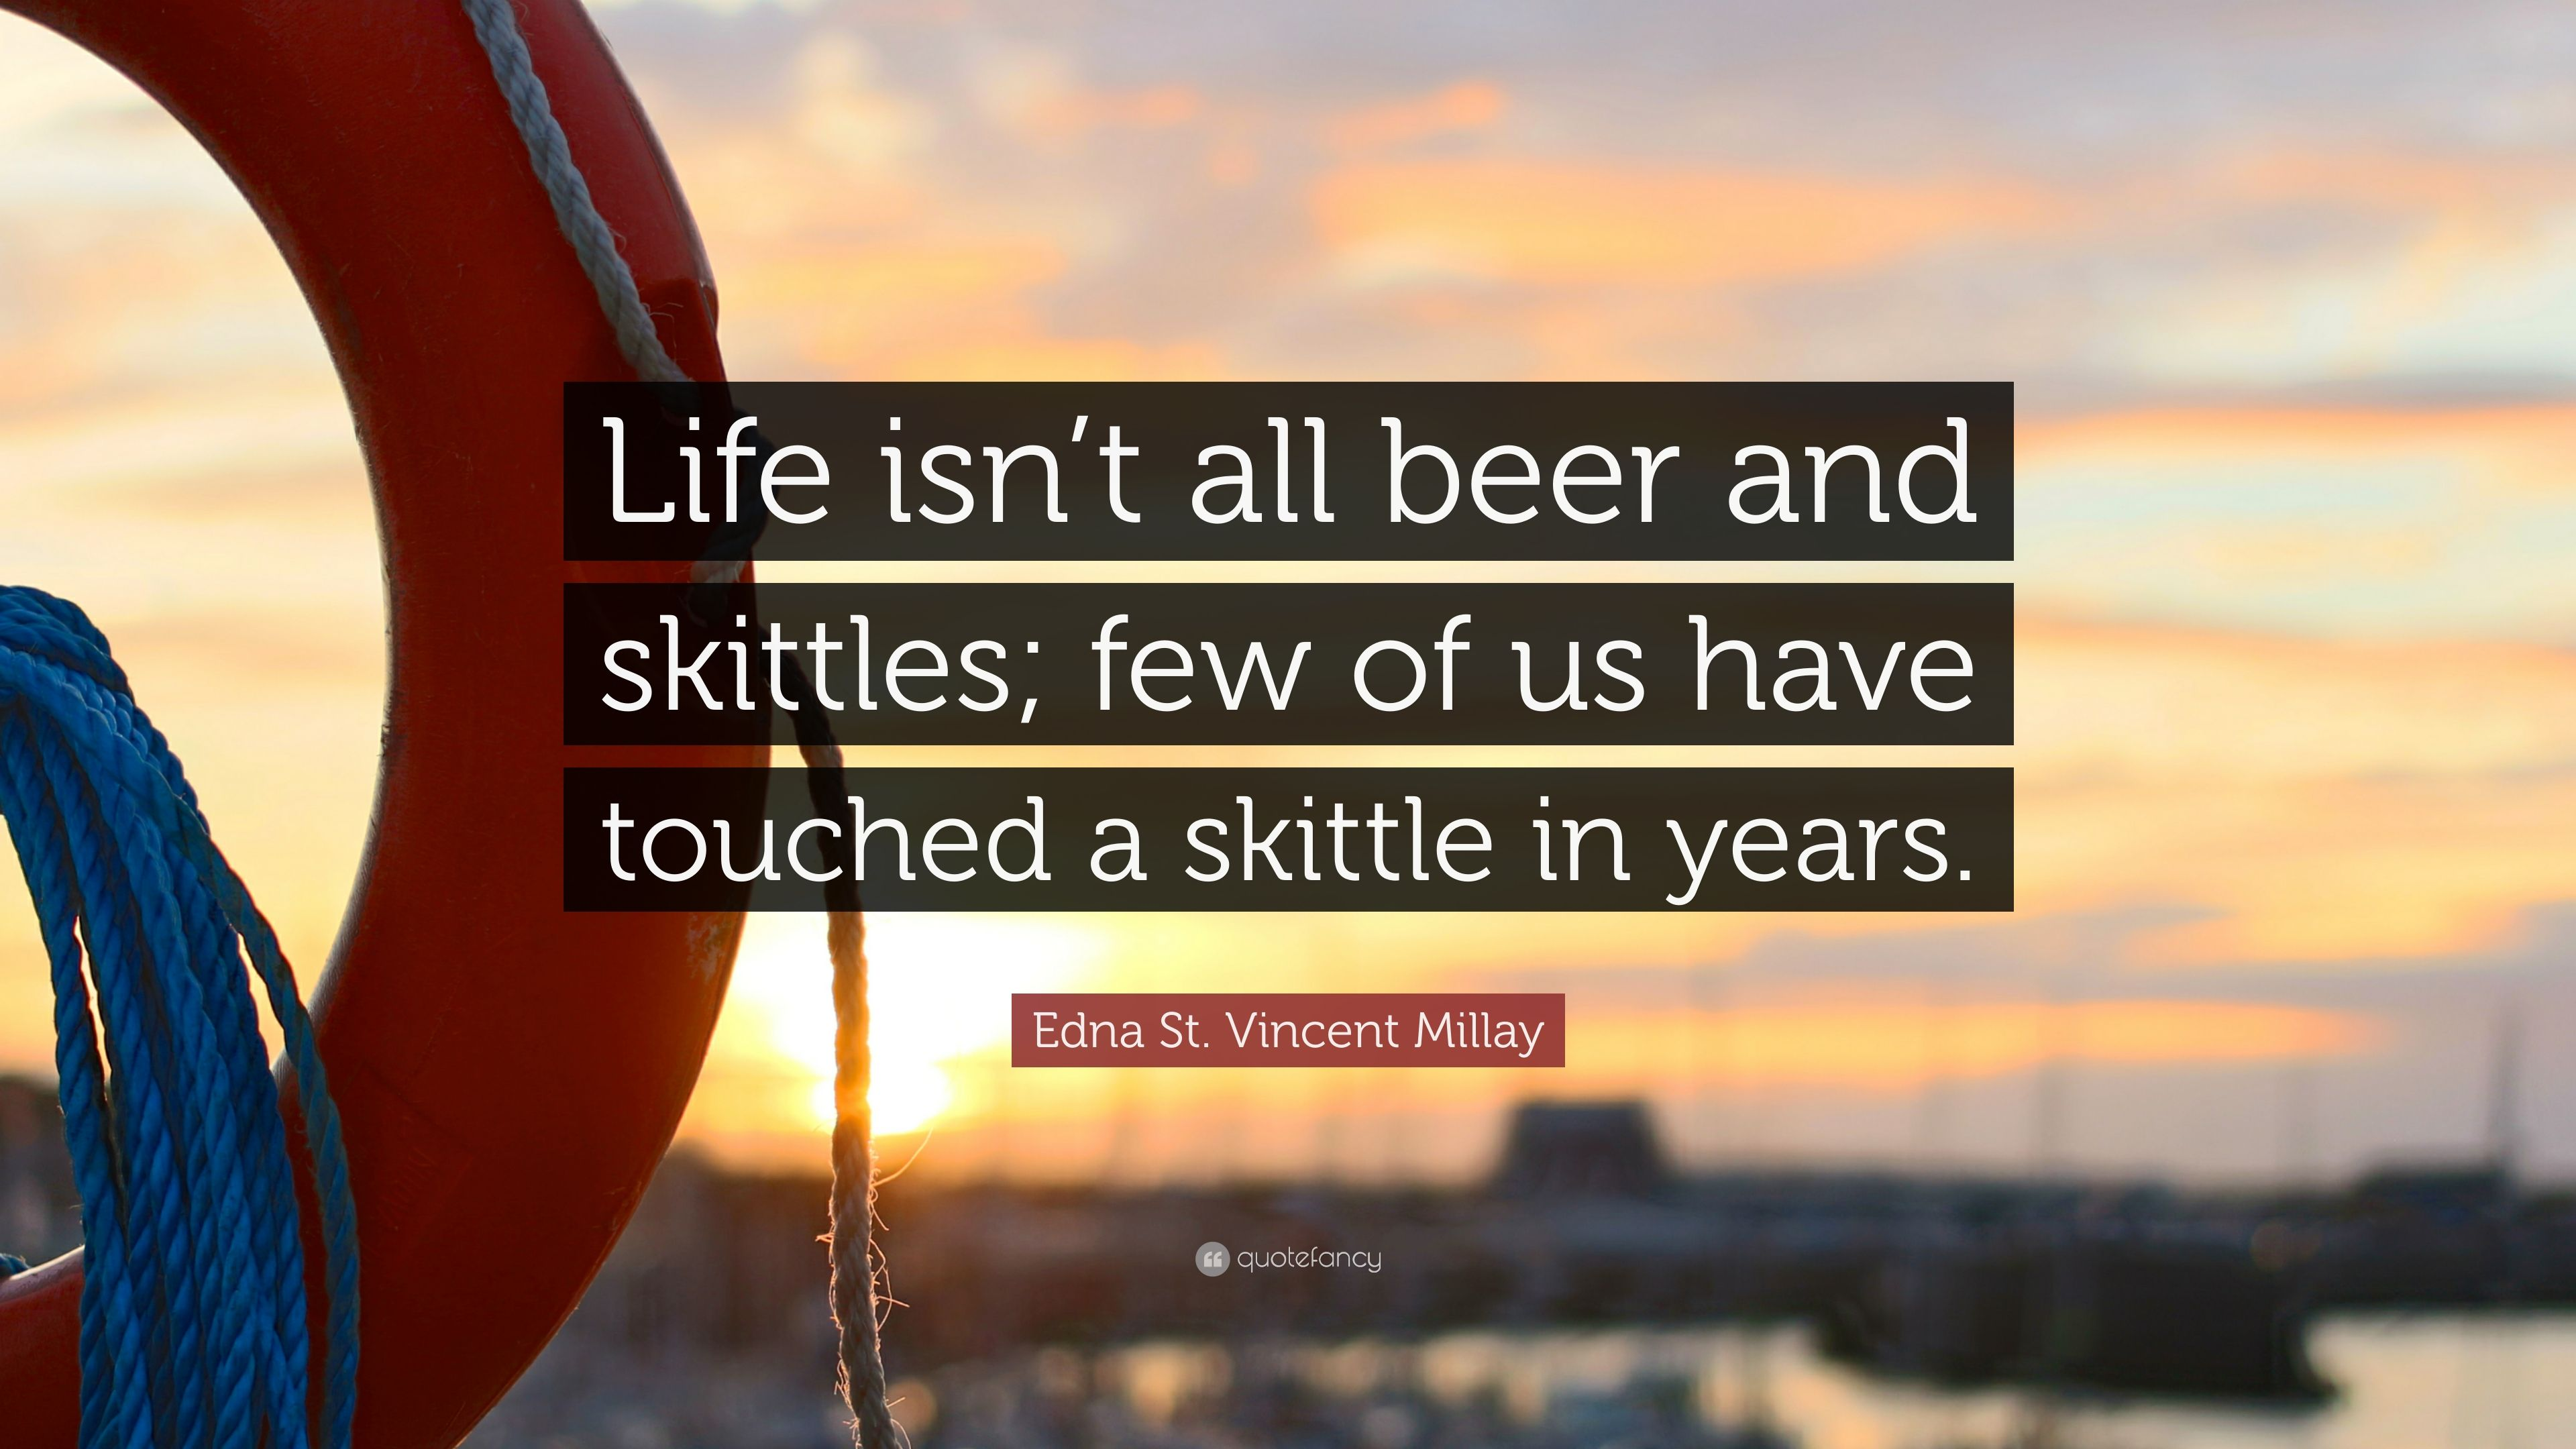 edna st vincent millay quote life isn t all beer and skittles few of us have touched a. Black Bedroom Furniture Sets. Home Design Ideas